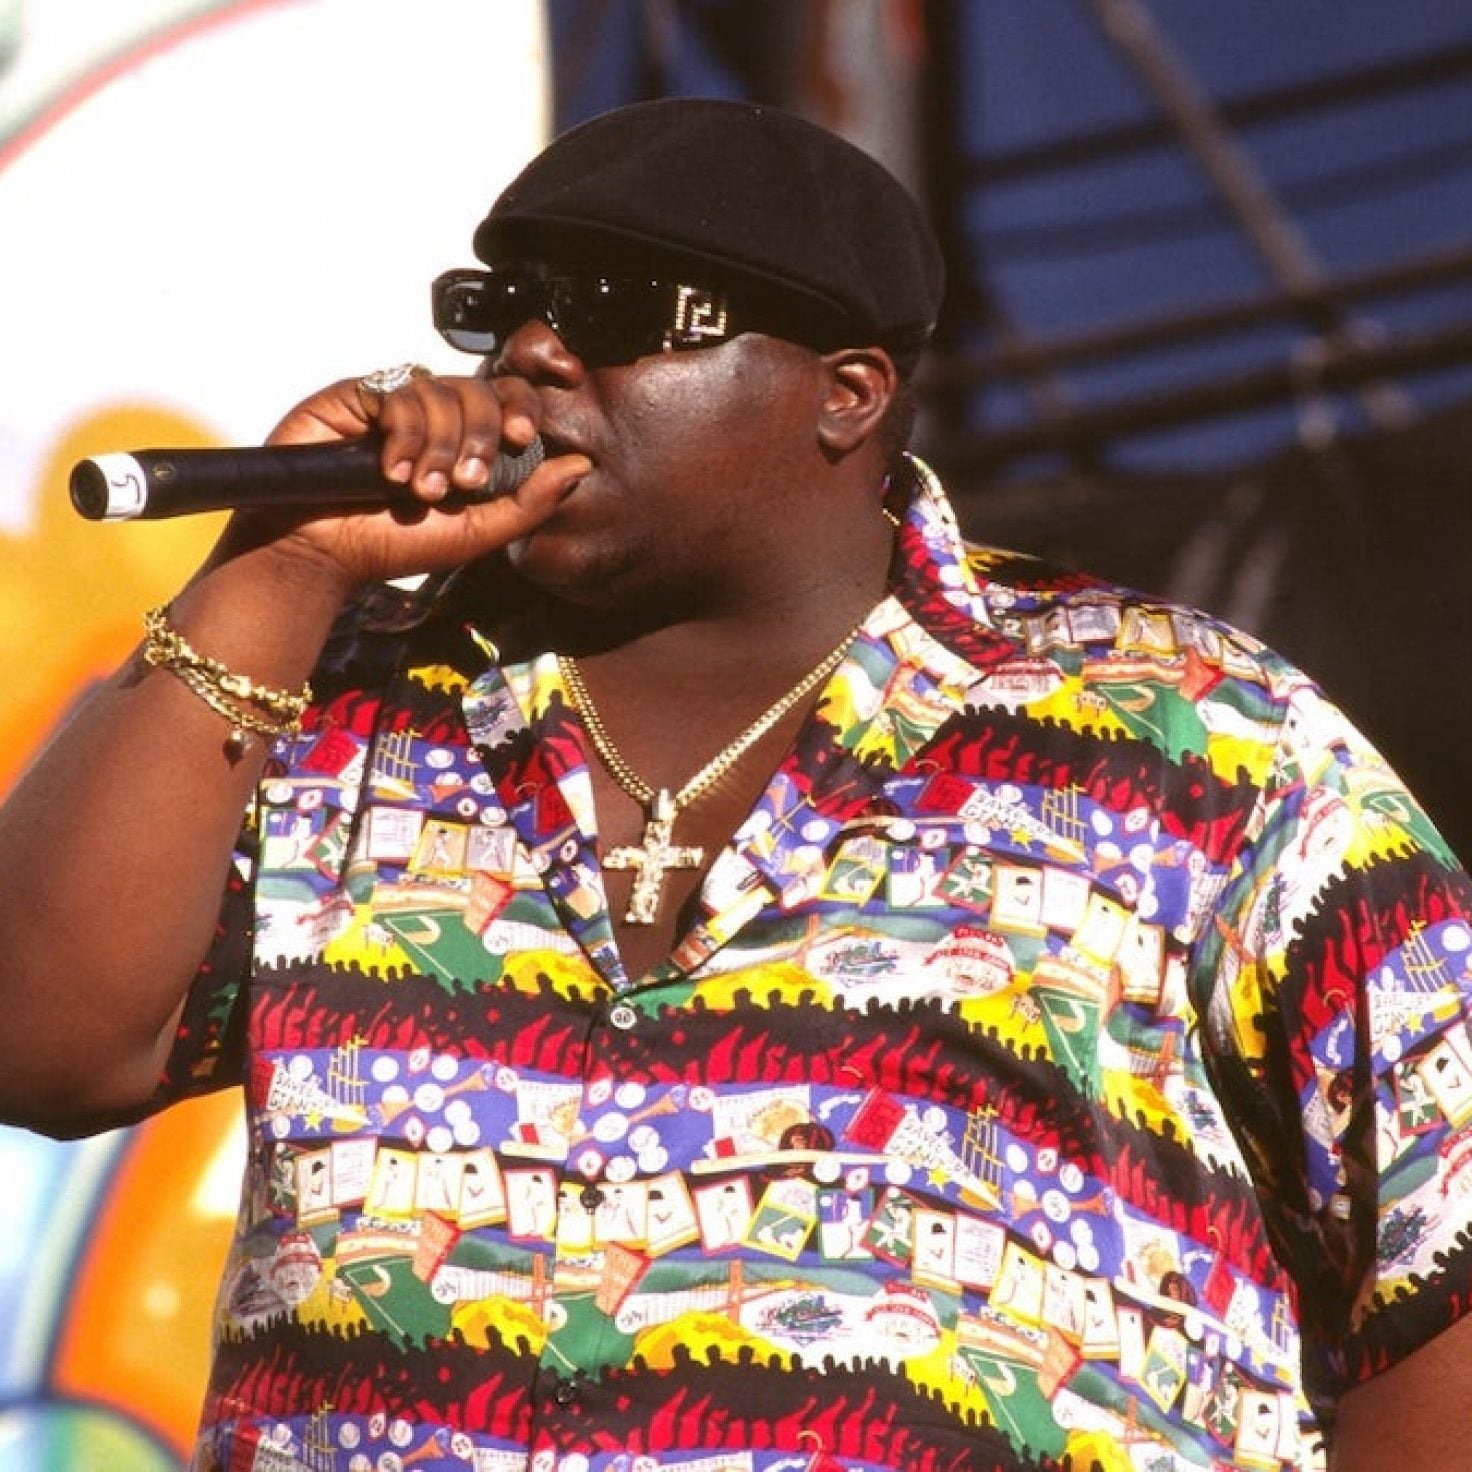 Listen To This Unreleased Song From The Notorious B.I.G.